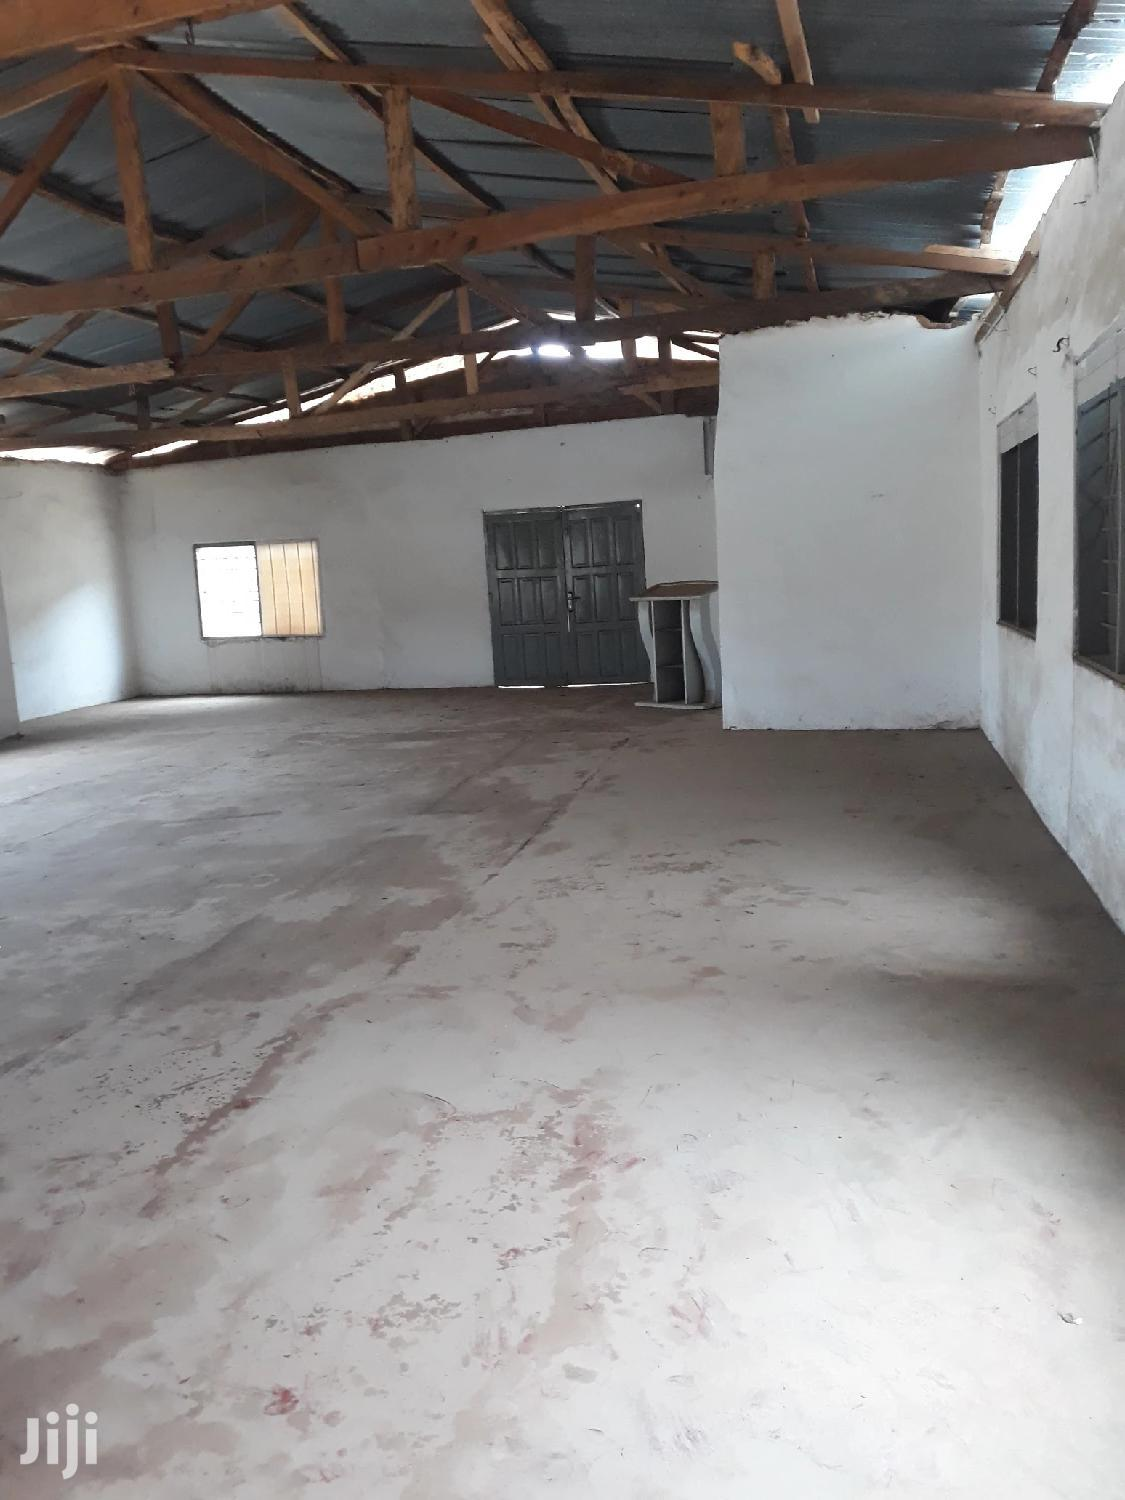 Church Premiers | Event centres, Venues and Workstations for sale in North Kaneshie, Greater Accra, Ghana